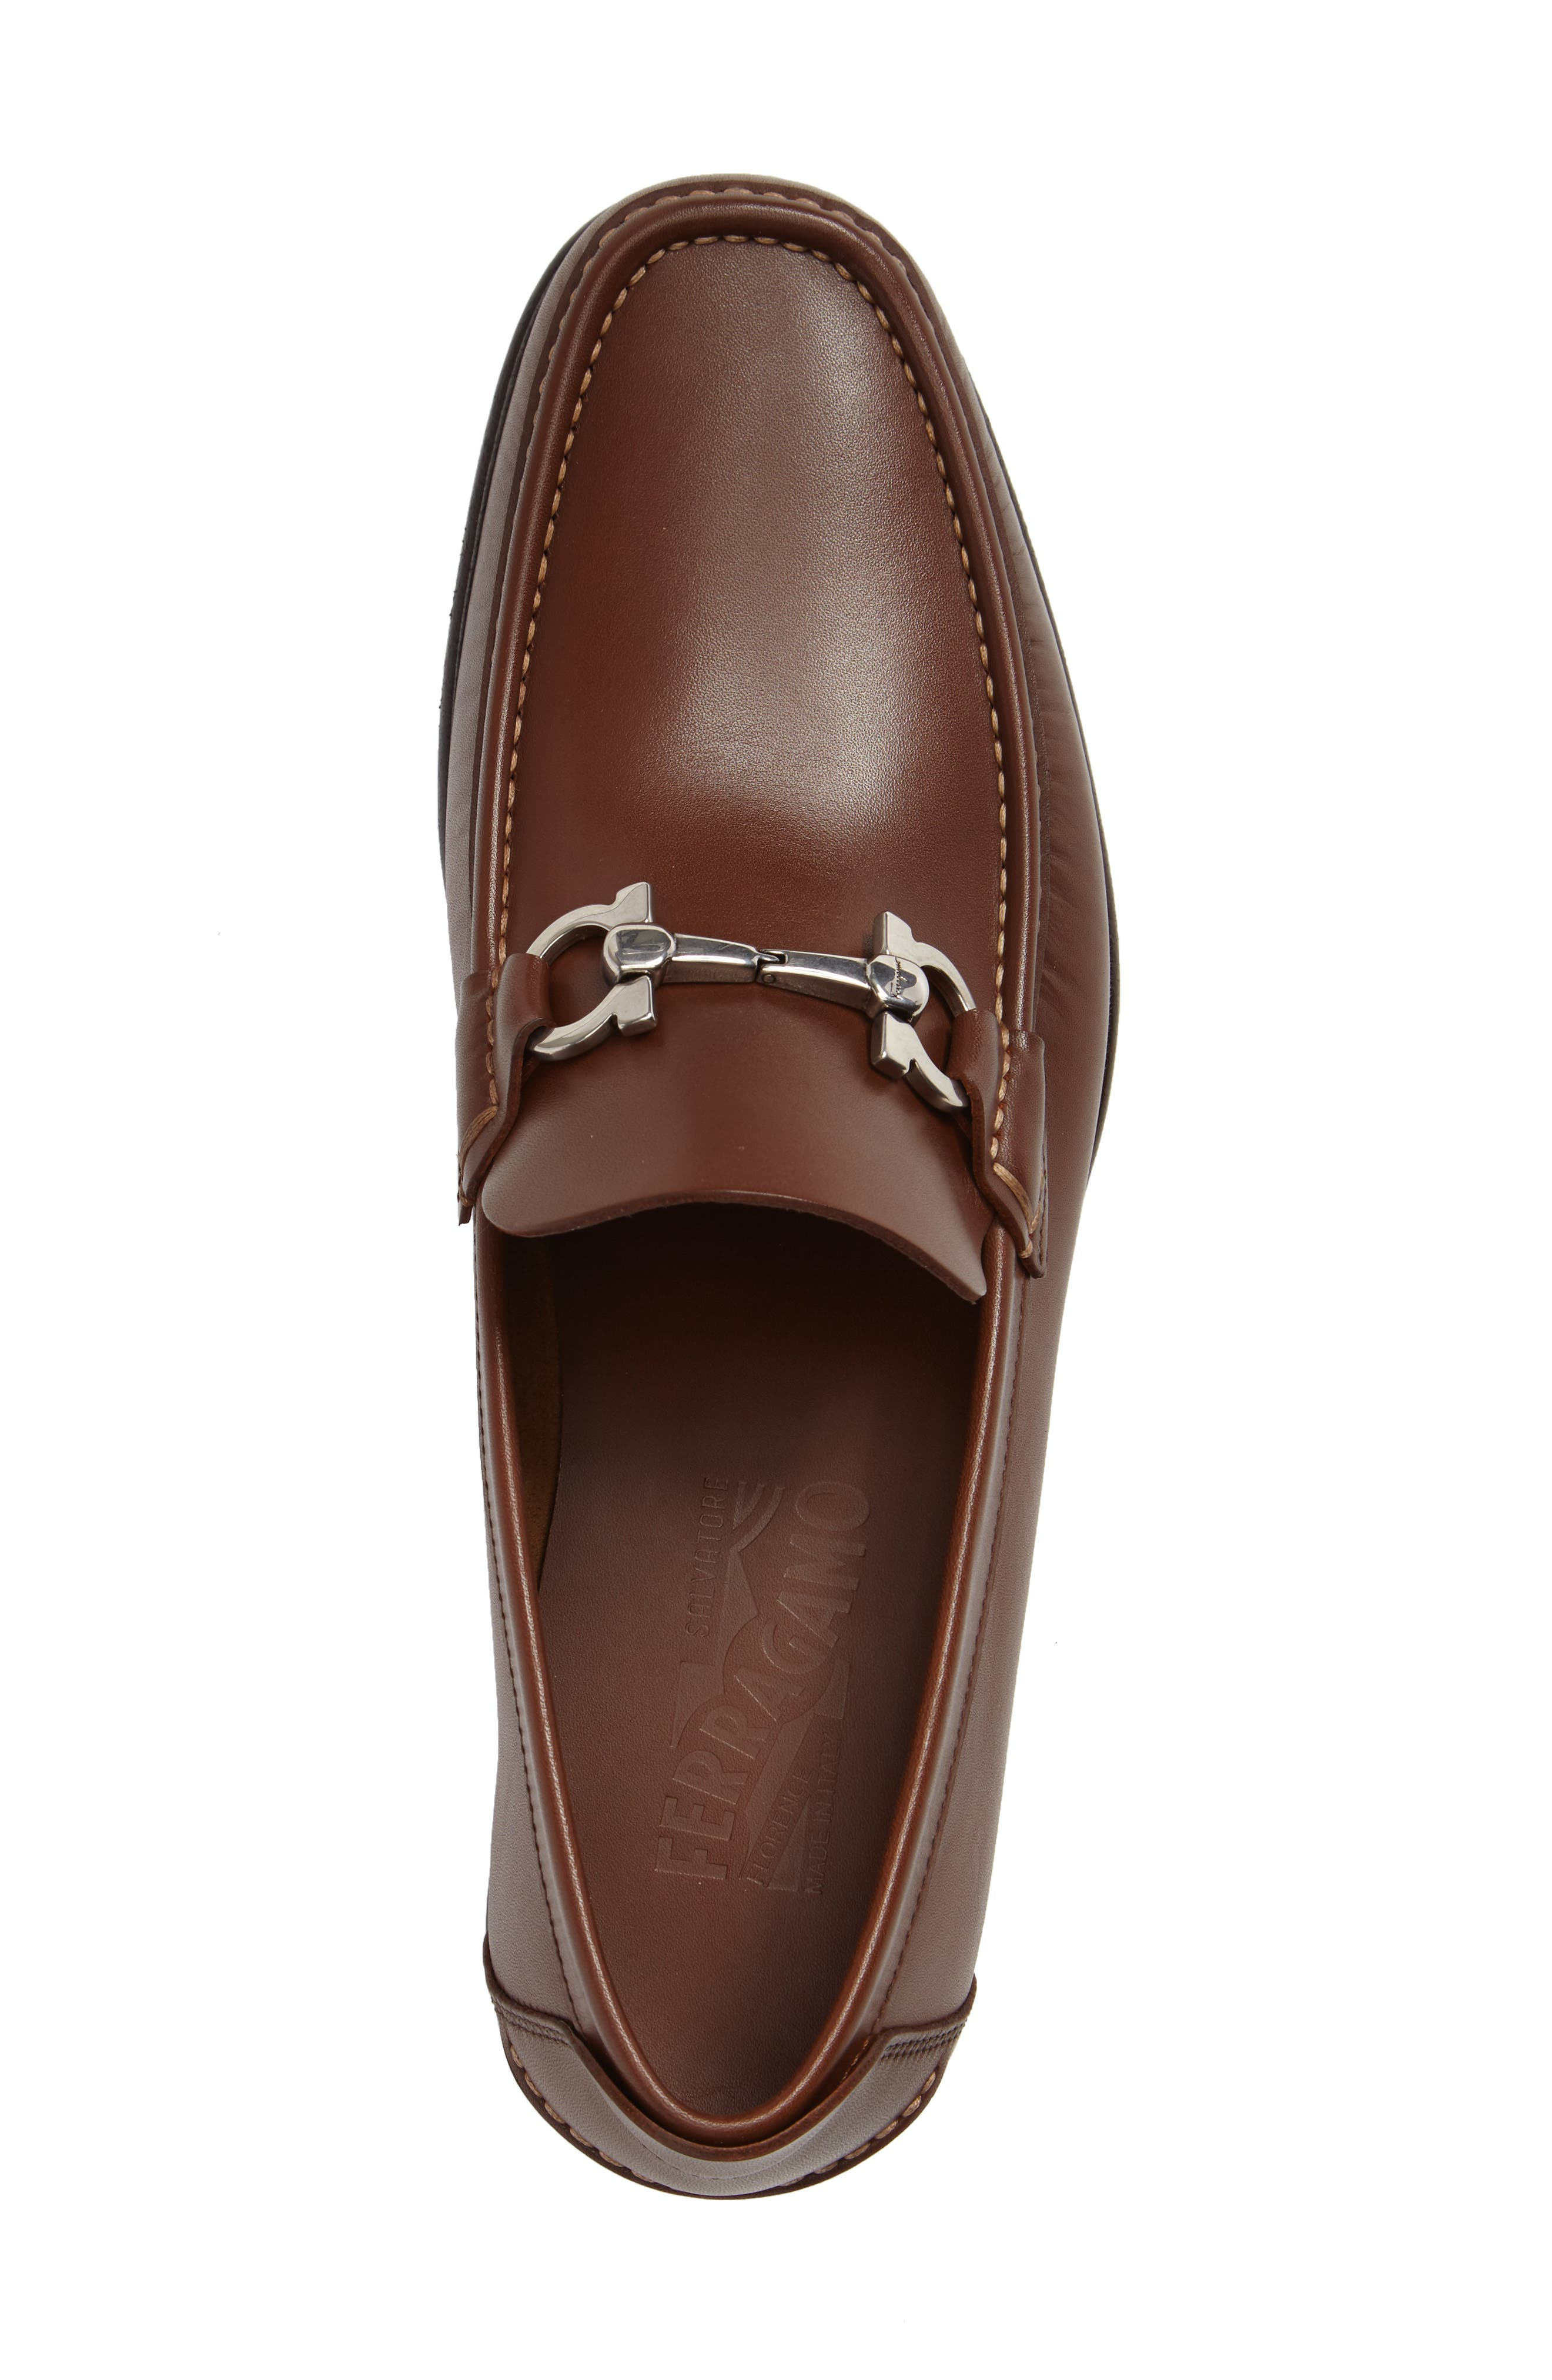 Bit Loafer,                             Alternate thumbnail 3, color,                             Brown Leather